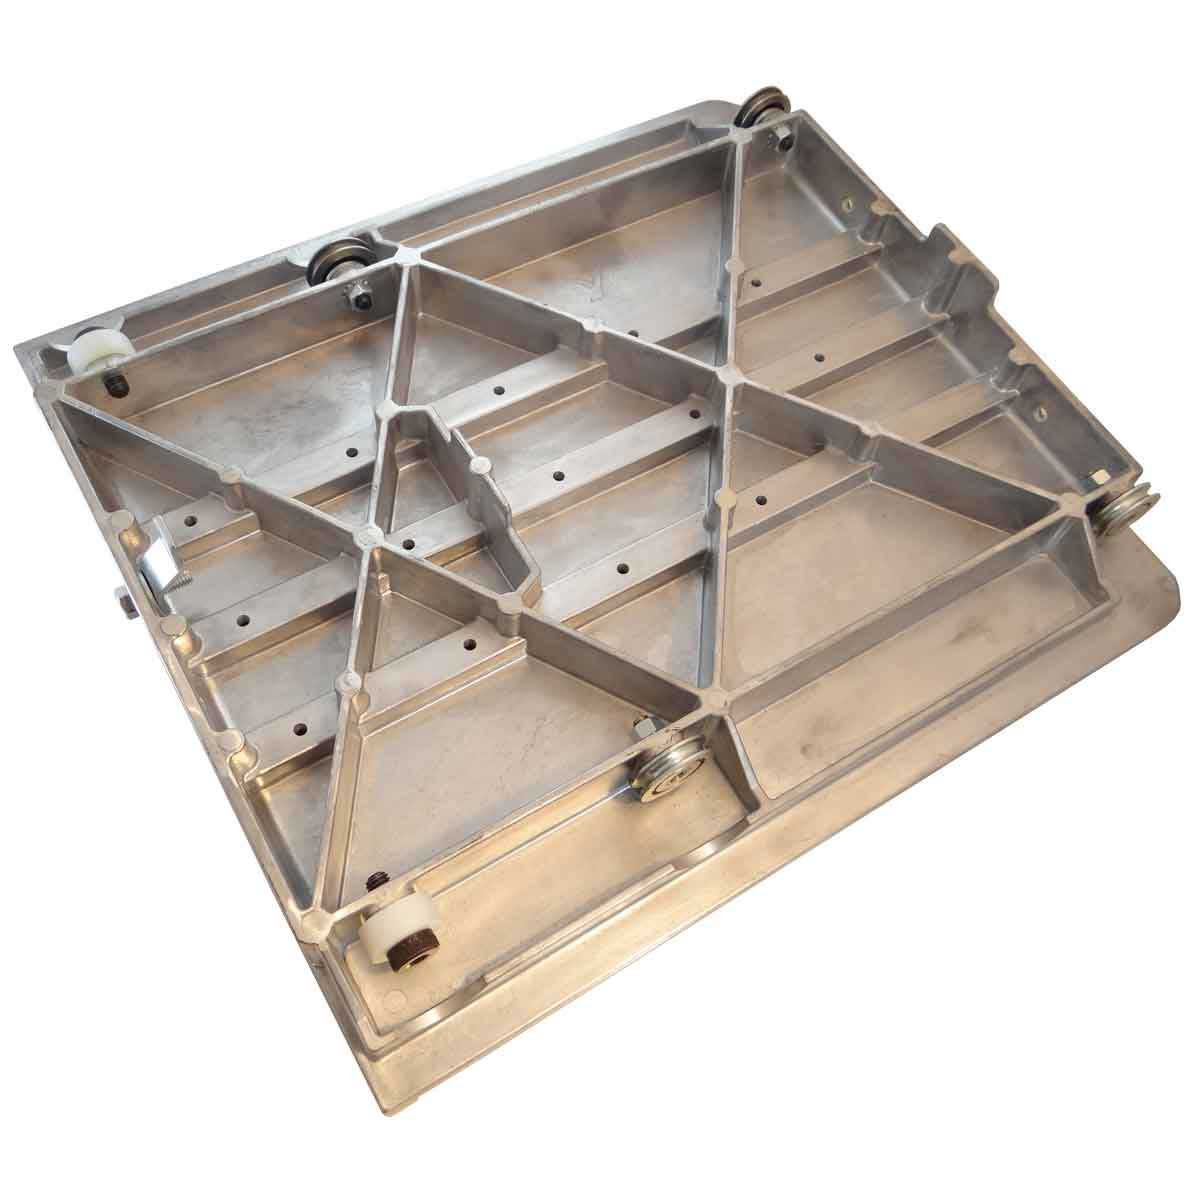 542203056 Carriage Tray tile saw